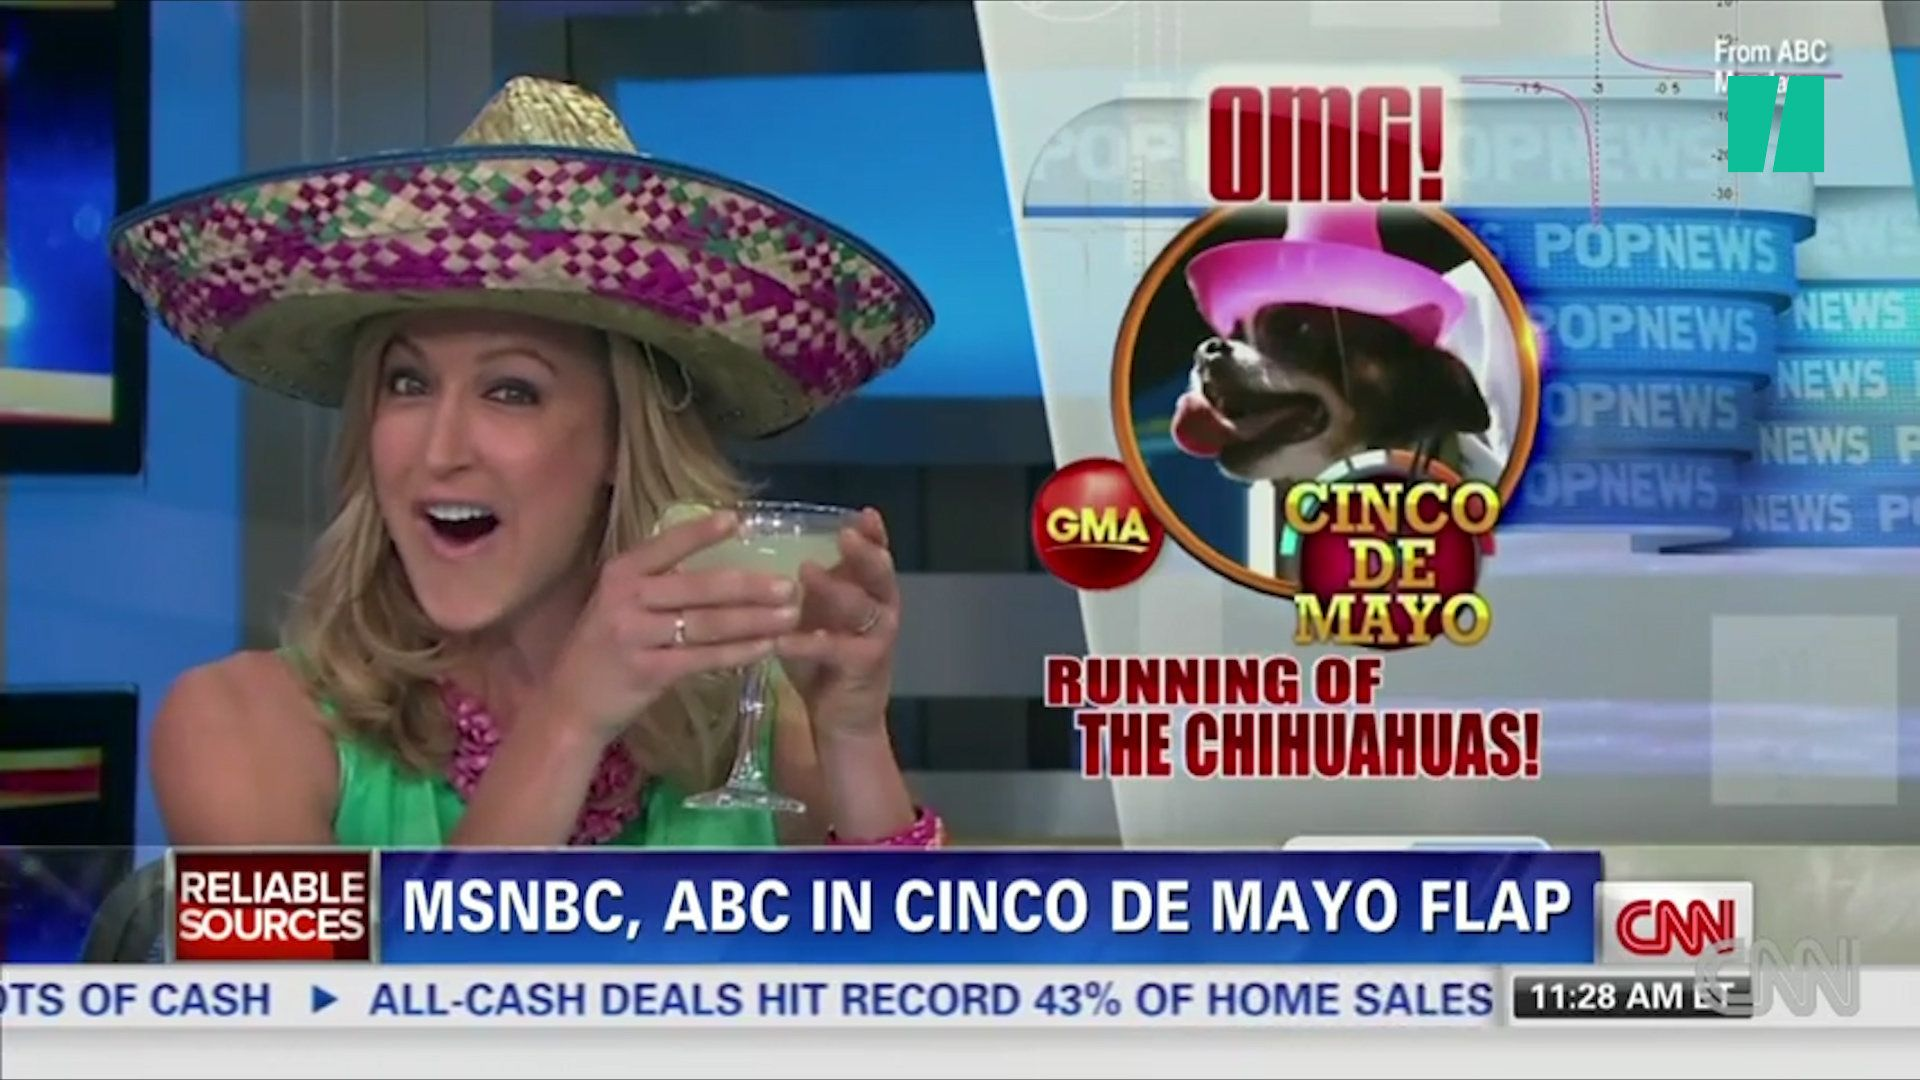 Cinco de Mayo is an important Mexican holiday not just an excuse to drink margaritas